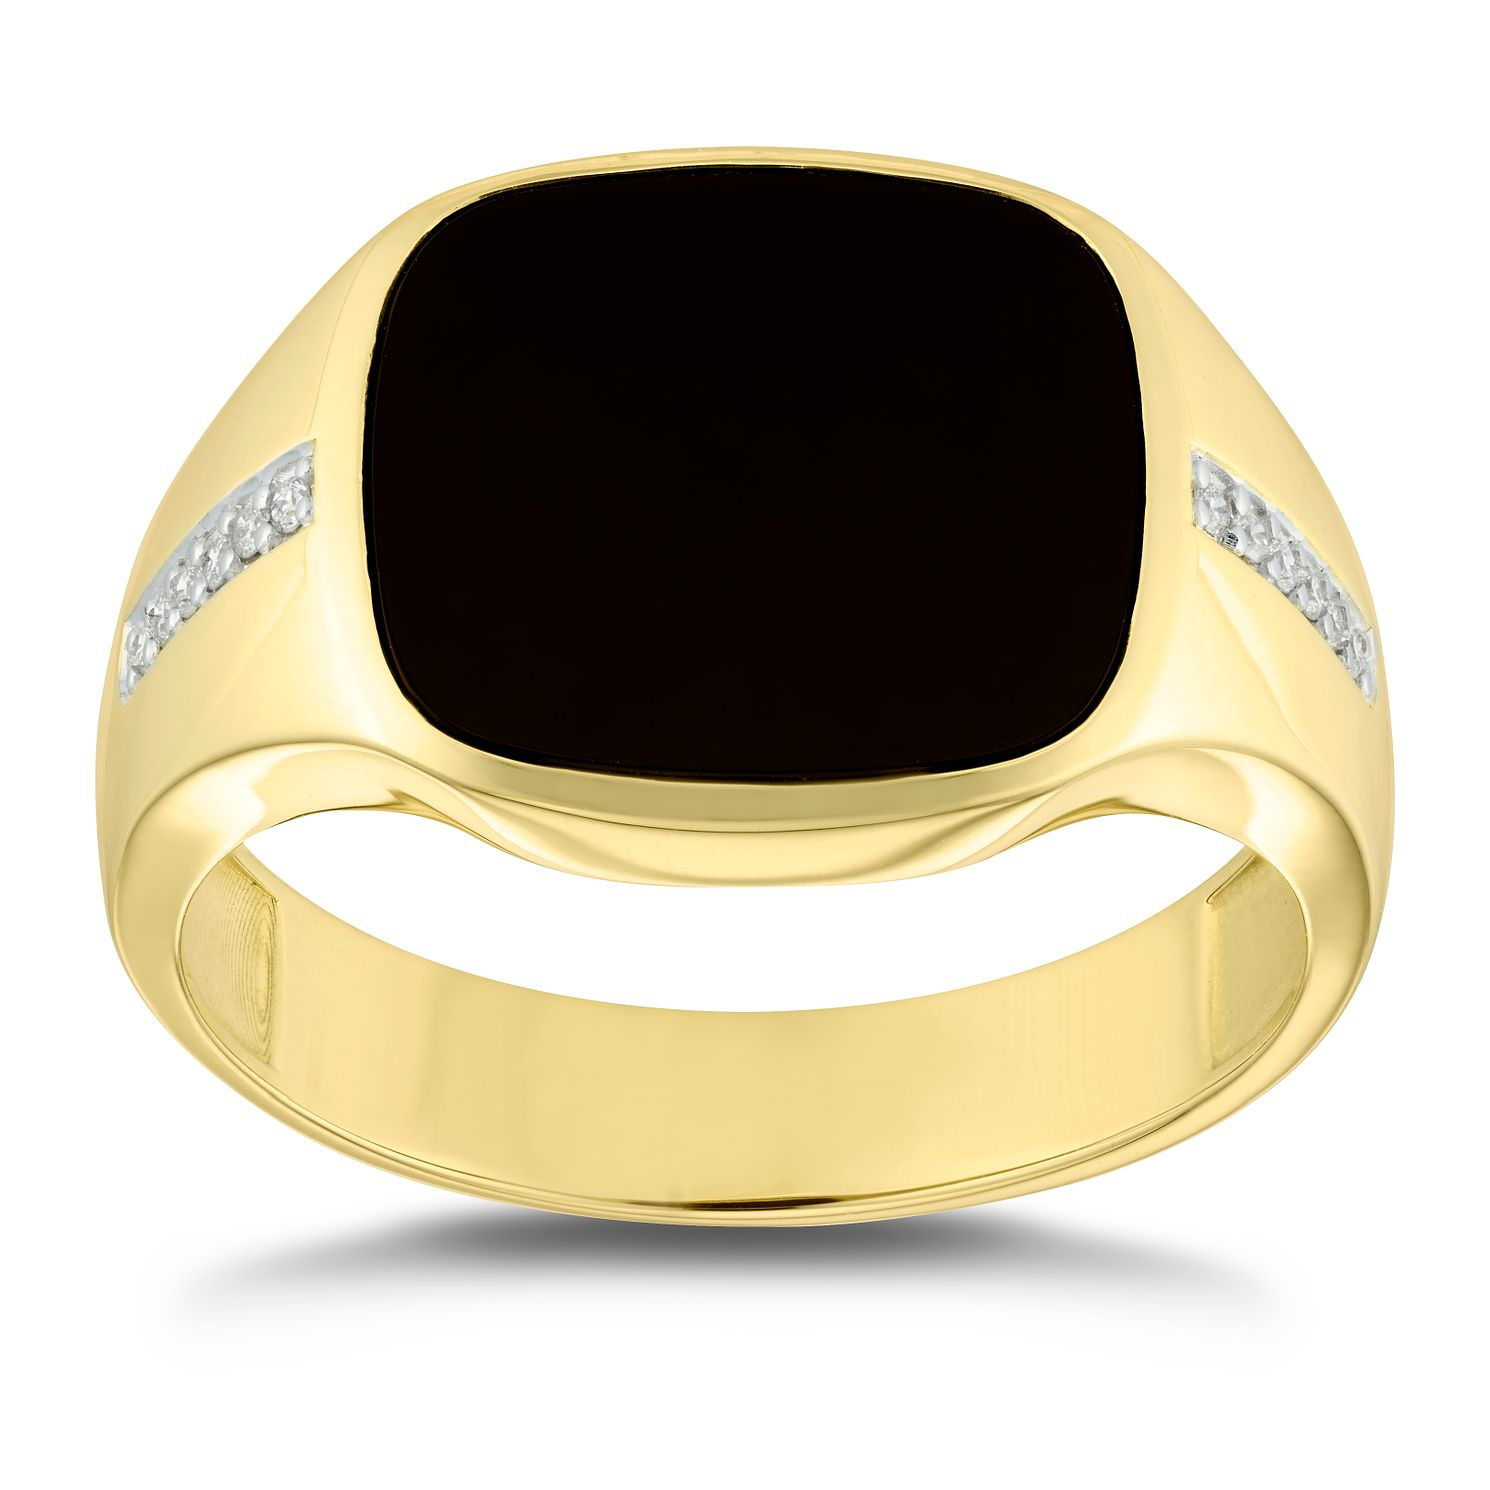 9ct Yellow Gold Diamond Set Onyx Signet Ring - Product number 4911229